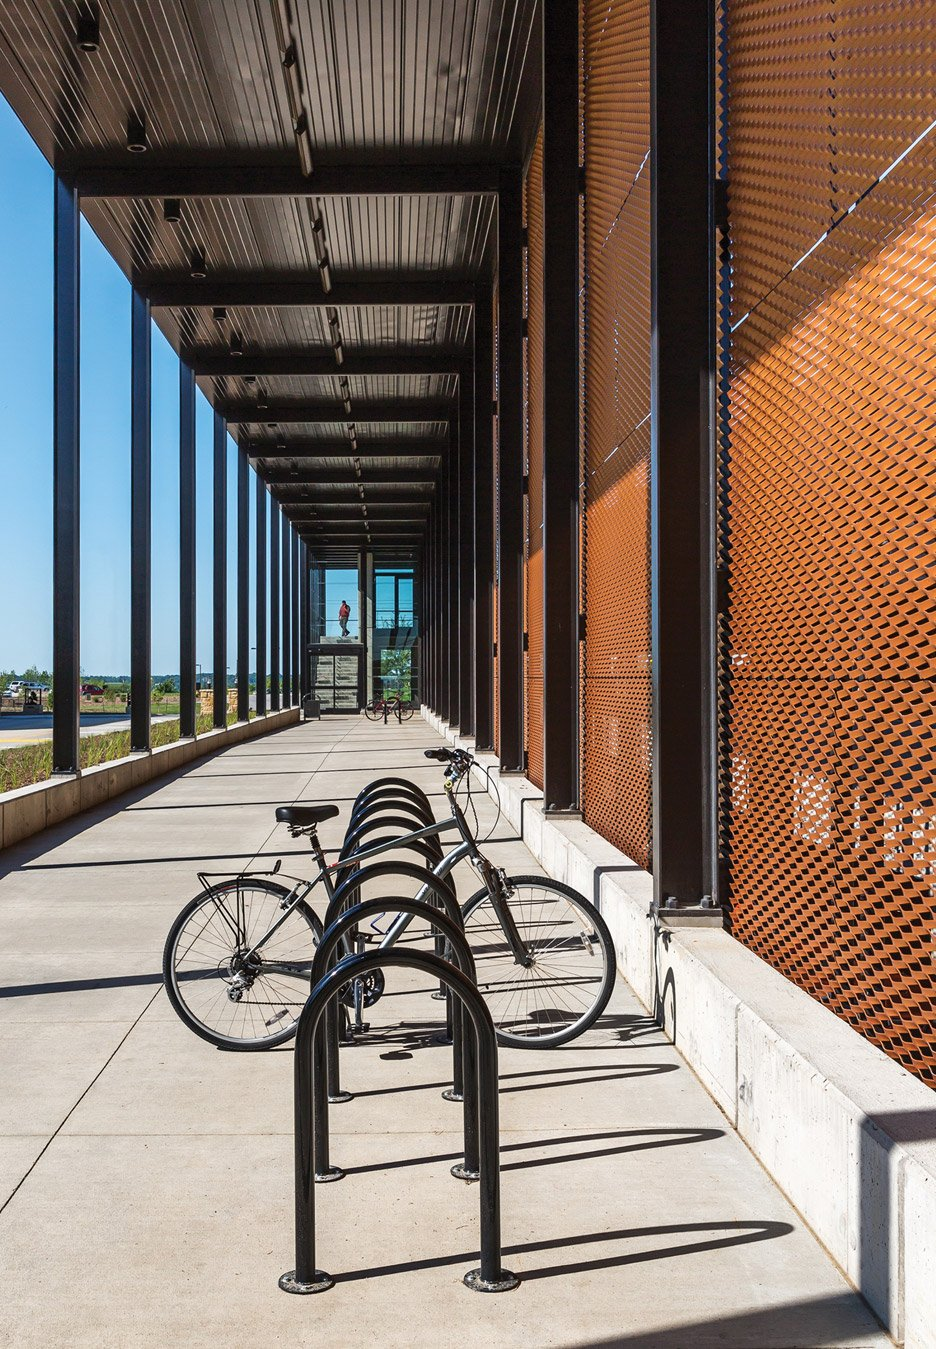 Campus Parking Facility by Substance Architecture in West Des Moines, Iowa.